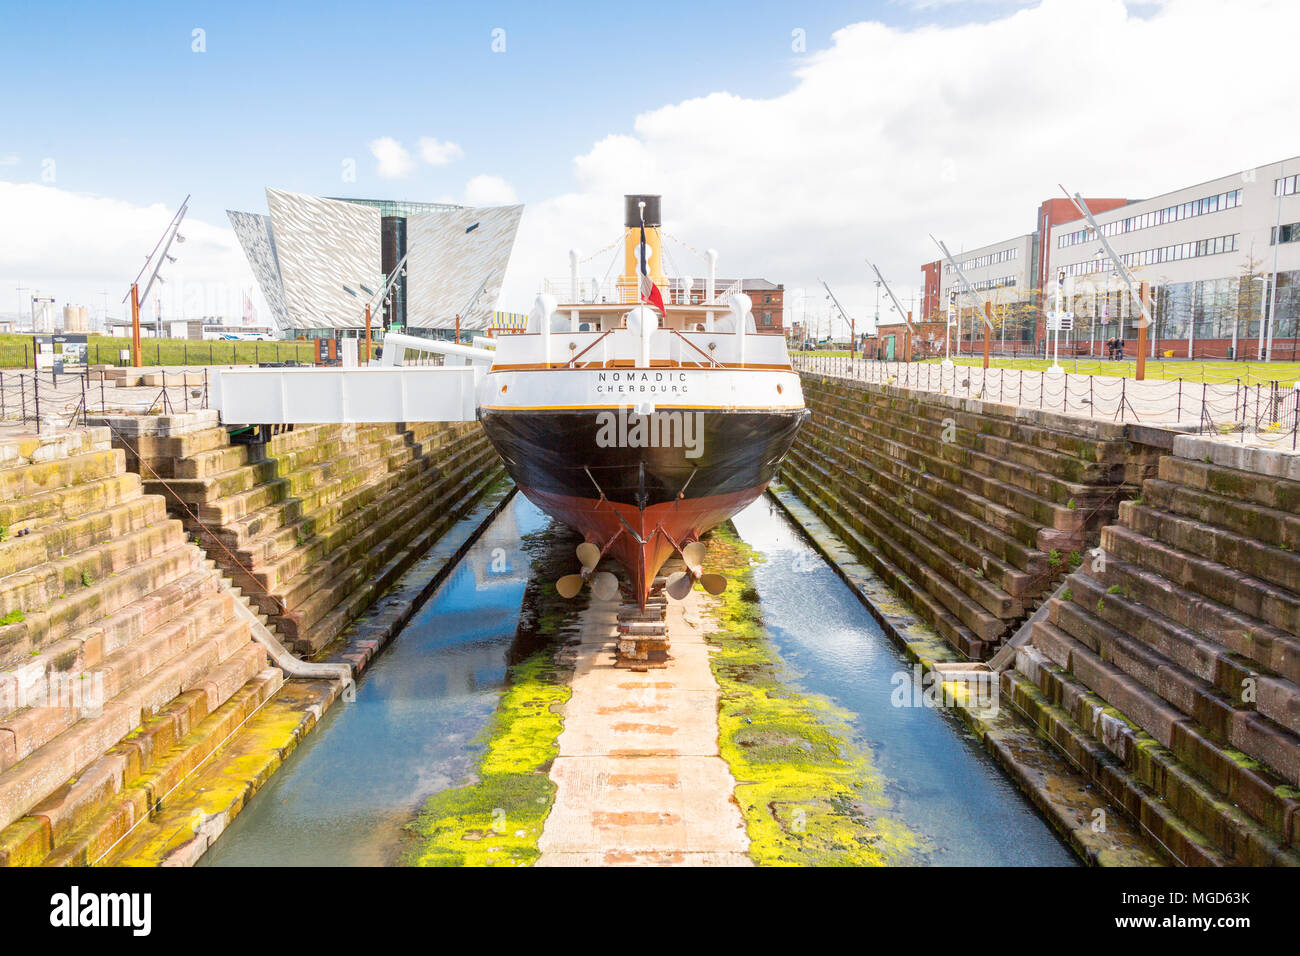 Belfast/N. Ireland - May 31, 2015: In dry dock, being worked on is The Nomadic, based in Cherbourg, France. Here on a sunny day in Belfast. - Stock Image